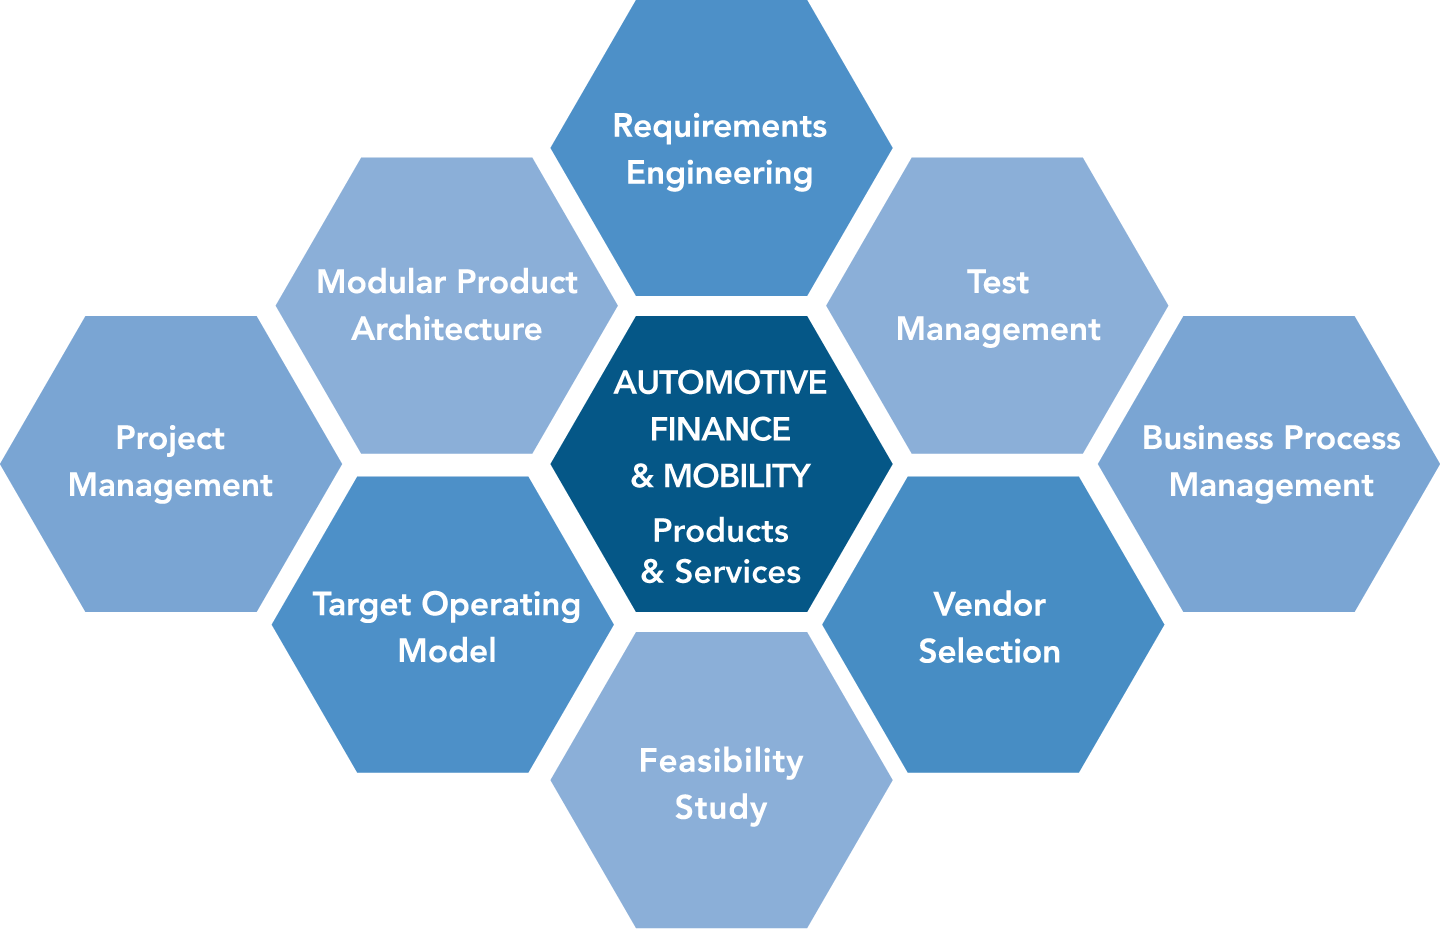 Requirements Engineering, Test Management, Business Process Management, Vendor Selection, Feasibility Study, Target Operating Model, Project Management, Modular Product Architecture